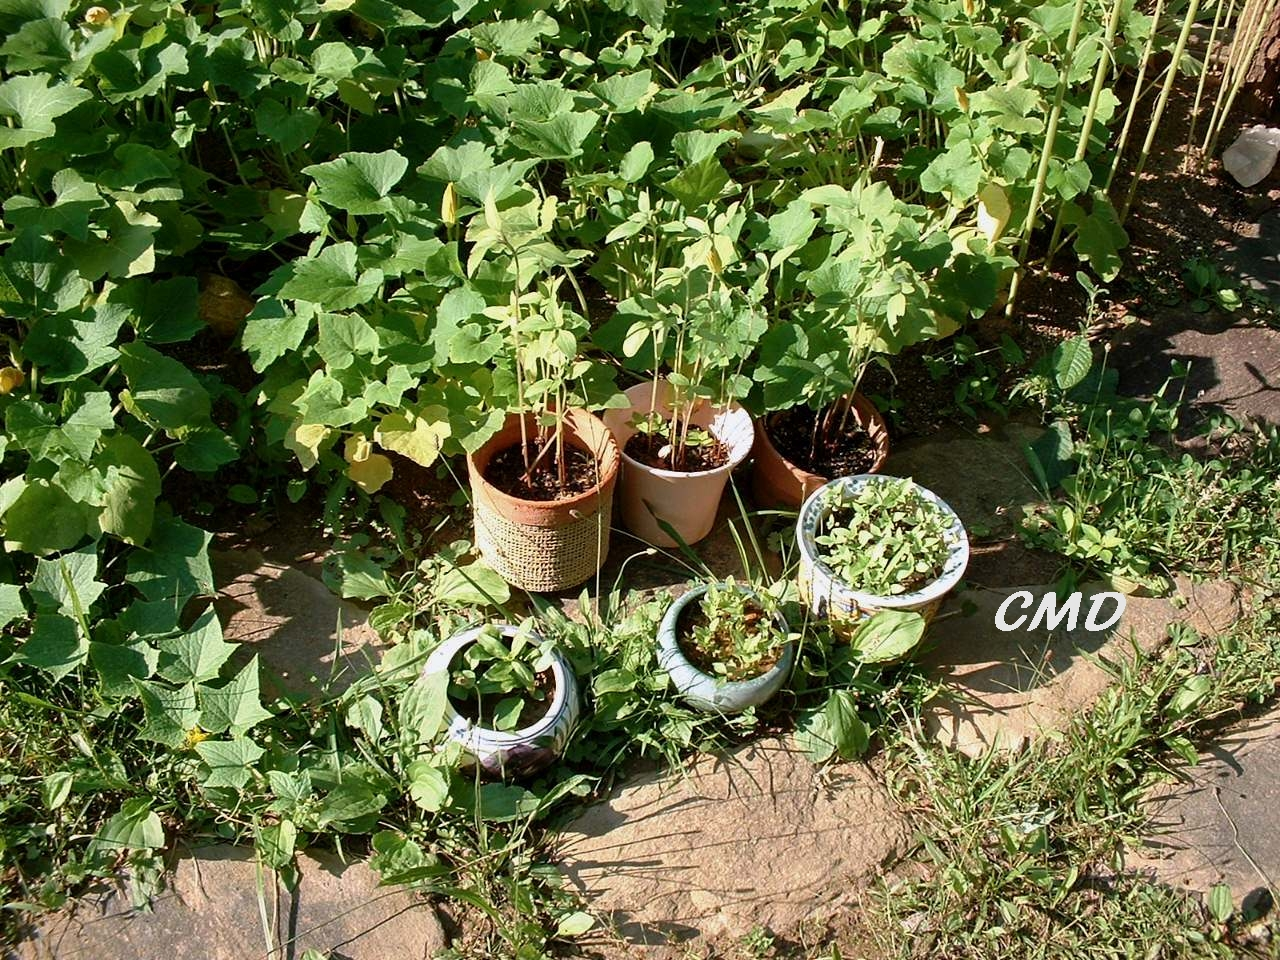 Farming Garden Organic Herbs pots planter fertilizer Basil Oregano Photograph by Colette Dowell for Economic Stimulus Recovery